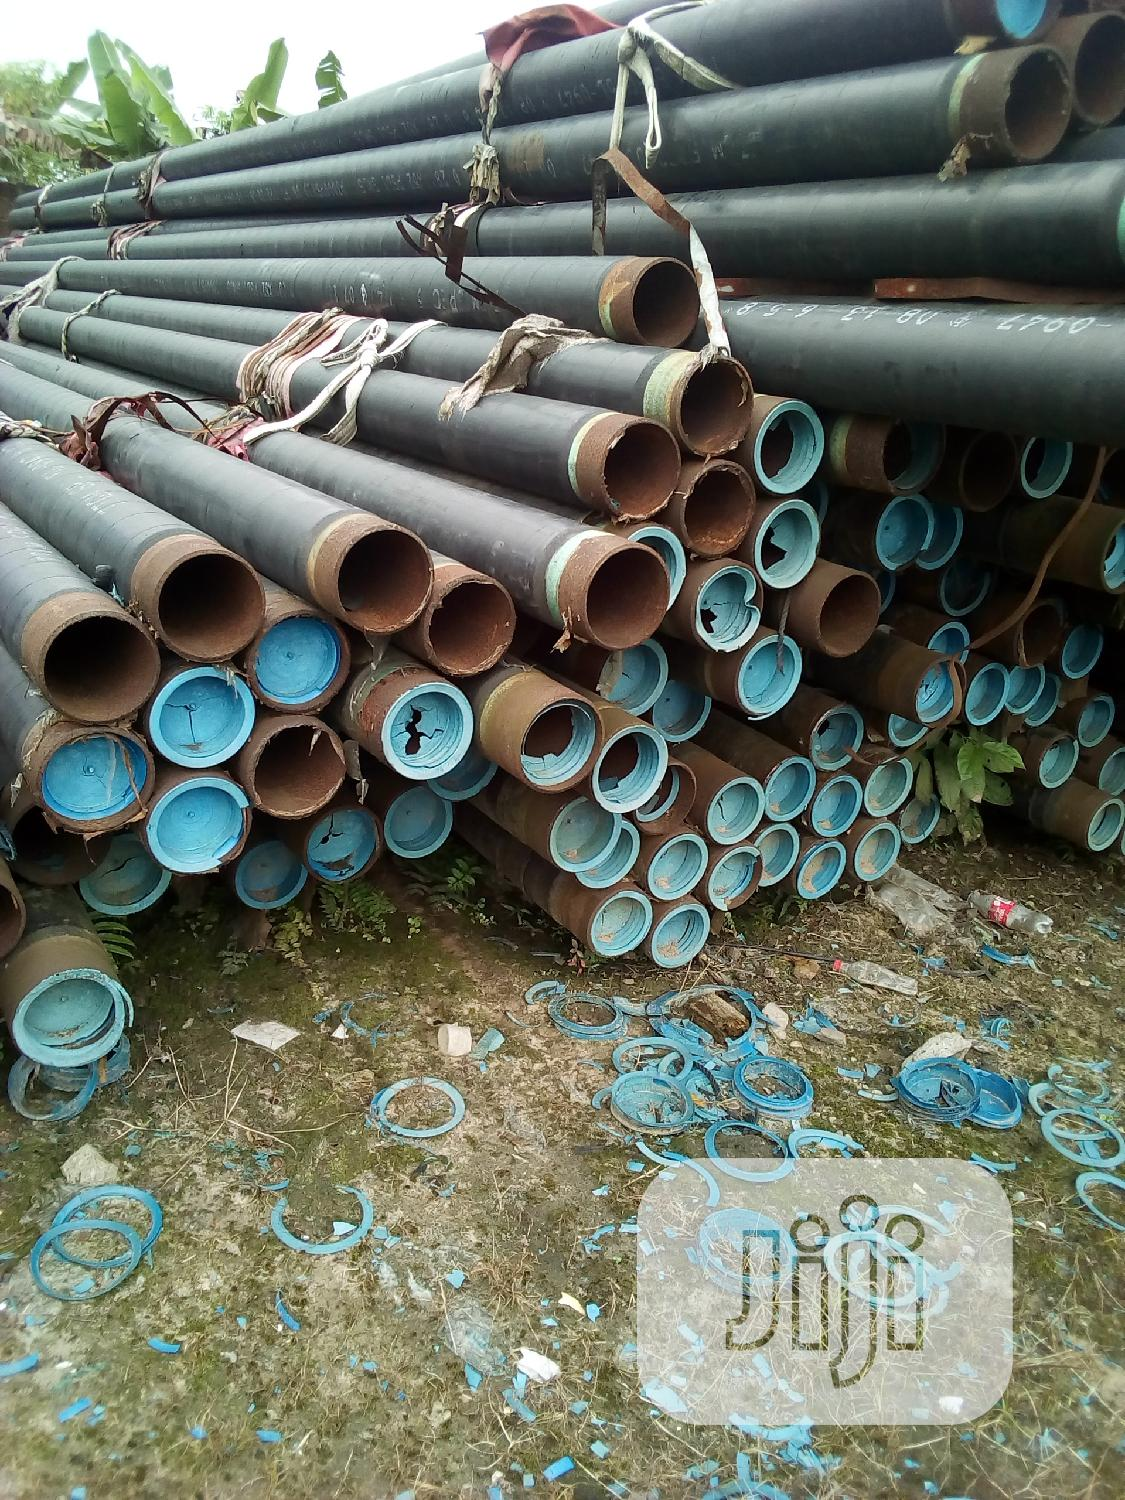 Archive: Iron And Steel Pipes